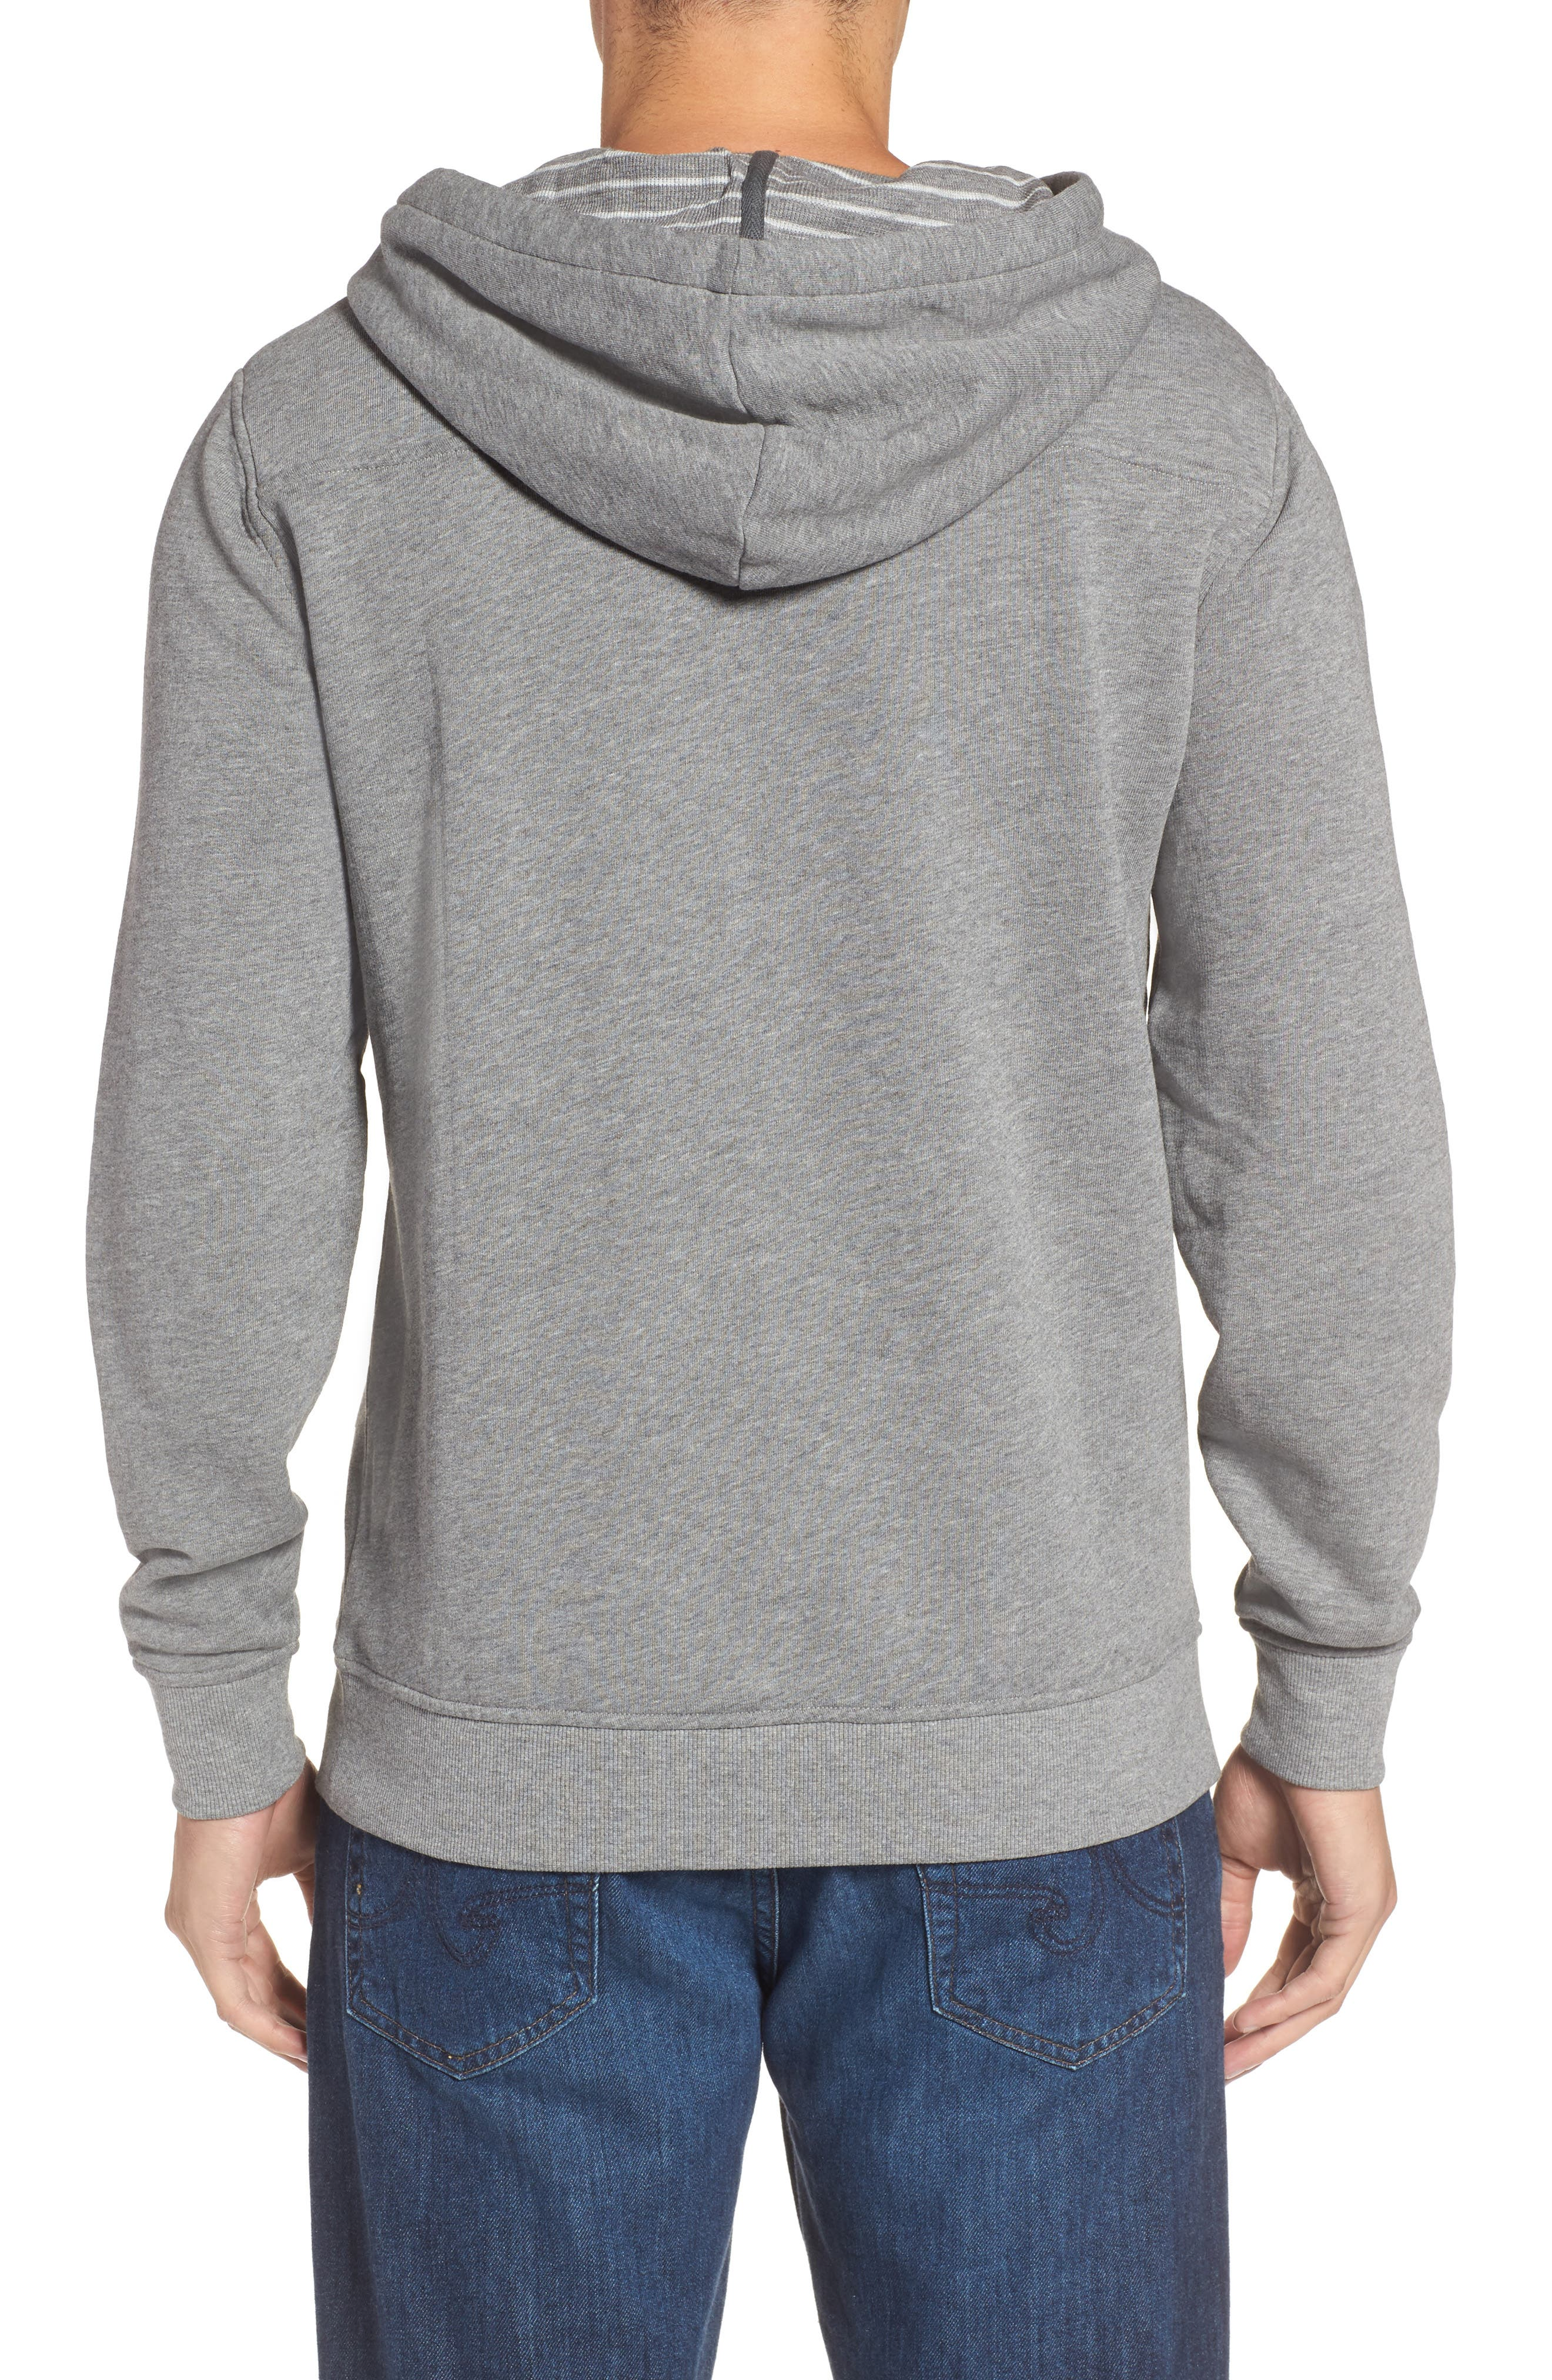 Washed Cotton Pullover Hoodie,                             Alternate thumbnail 2, color,                             030